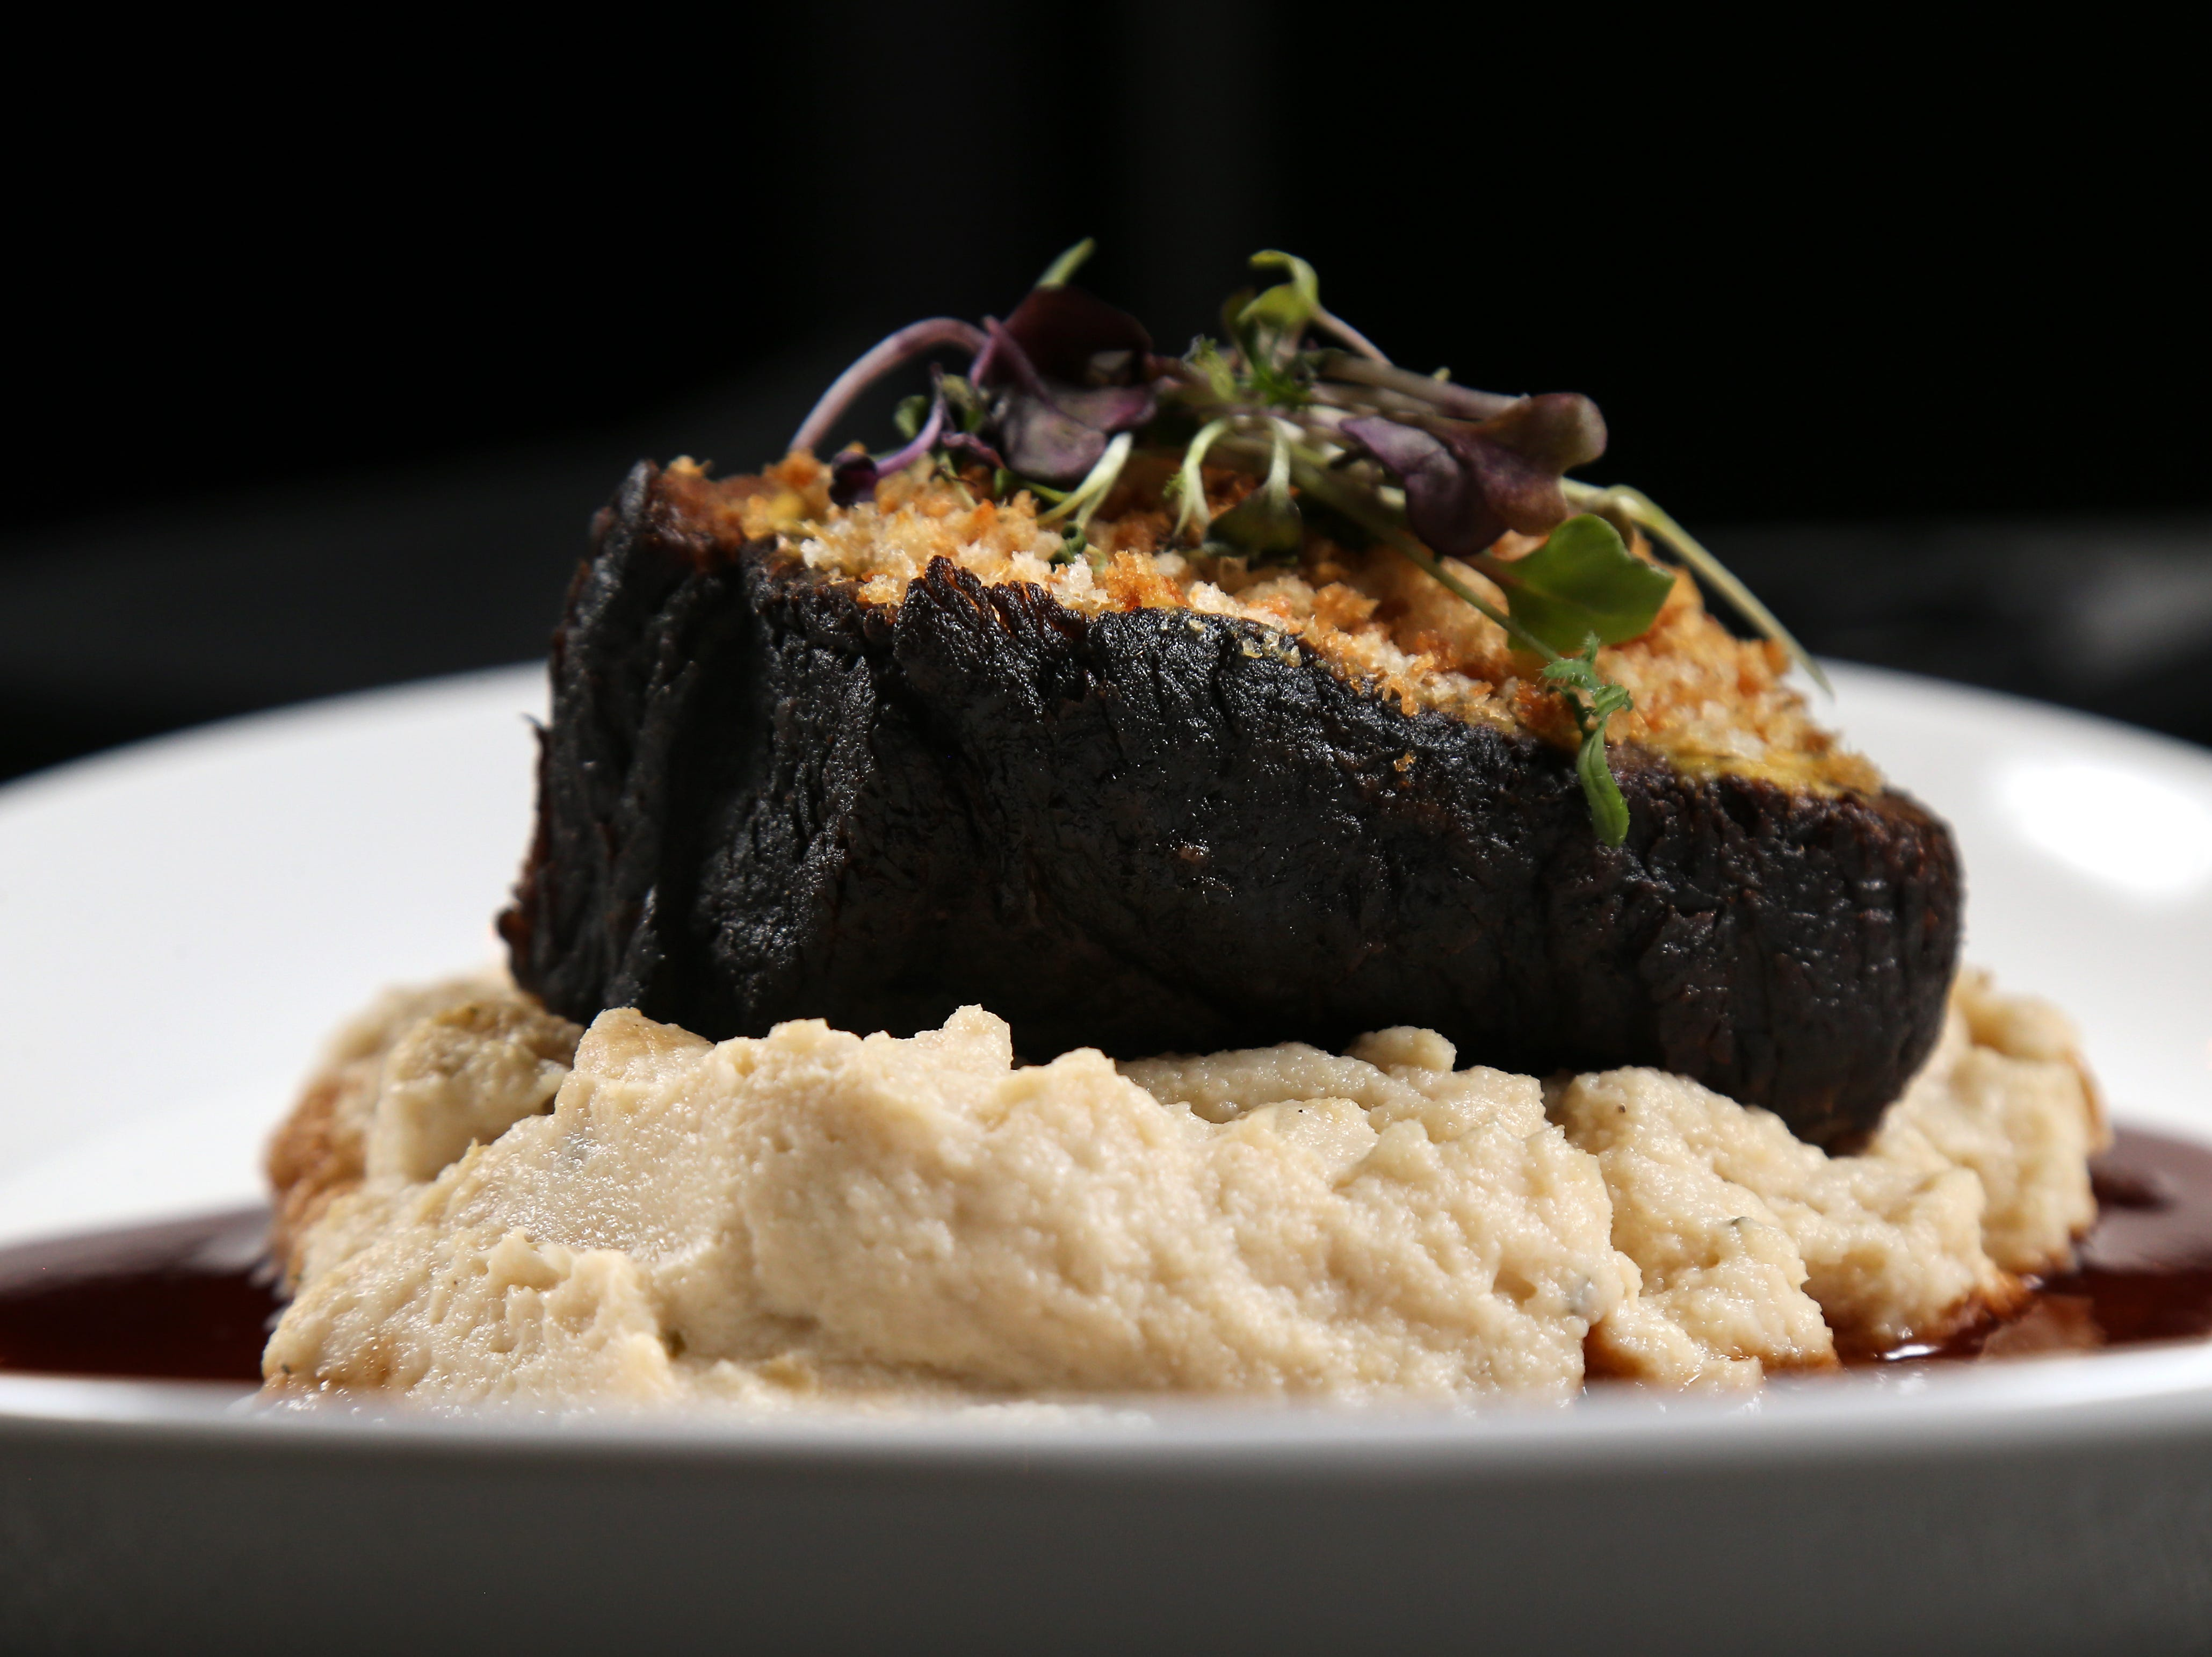 The beef short rib with sharp cheddar, giardiniera and parmesan crusted bread, pictured, Tuesday, Jan. 15, 2019,at Galla Park restaurant at The Banks in Cincinnati.